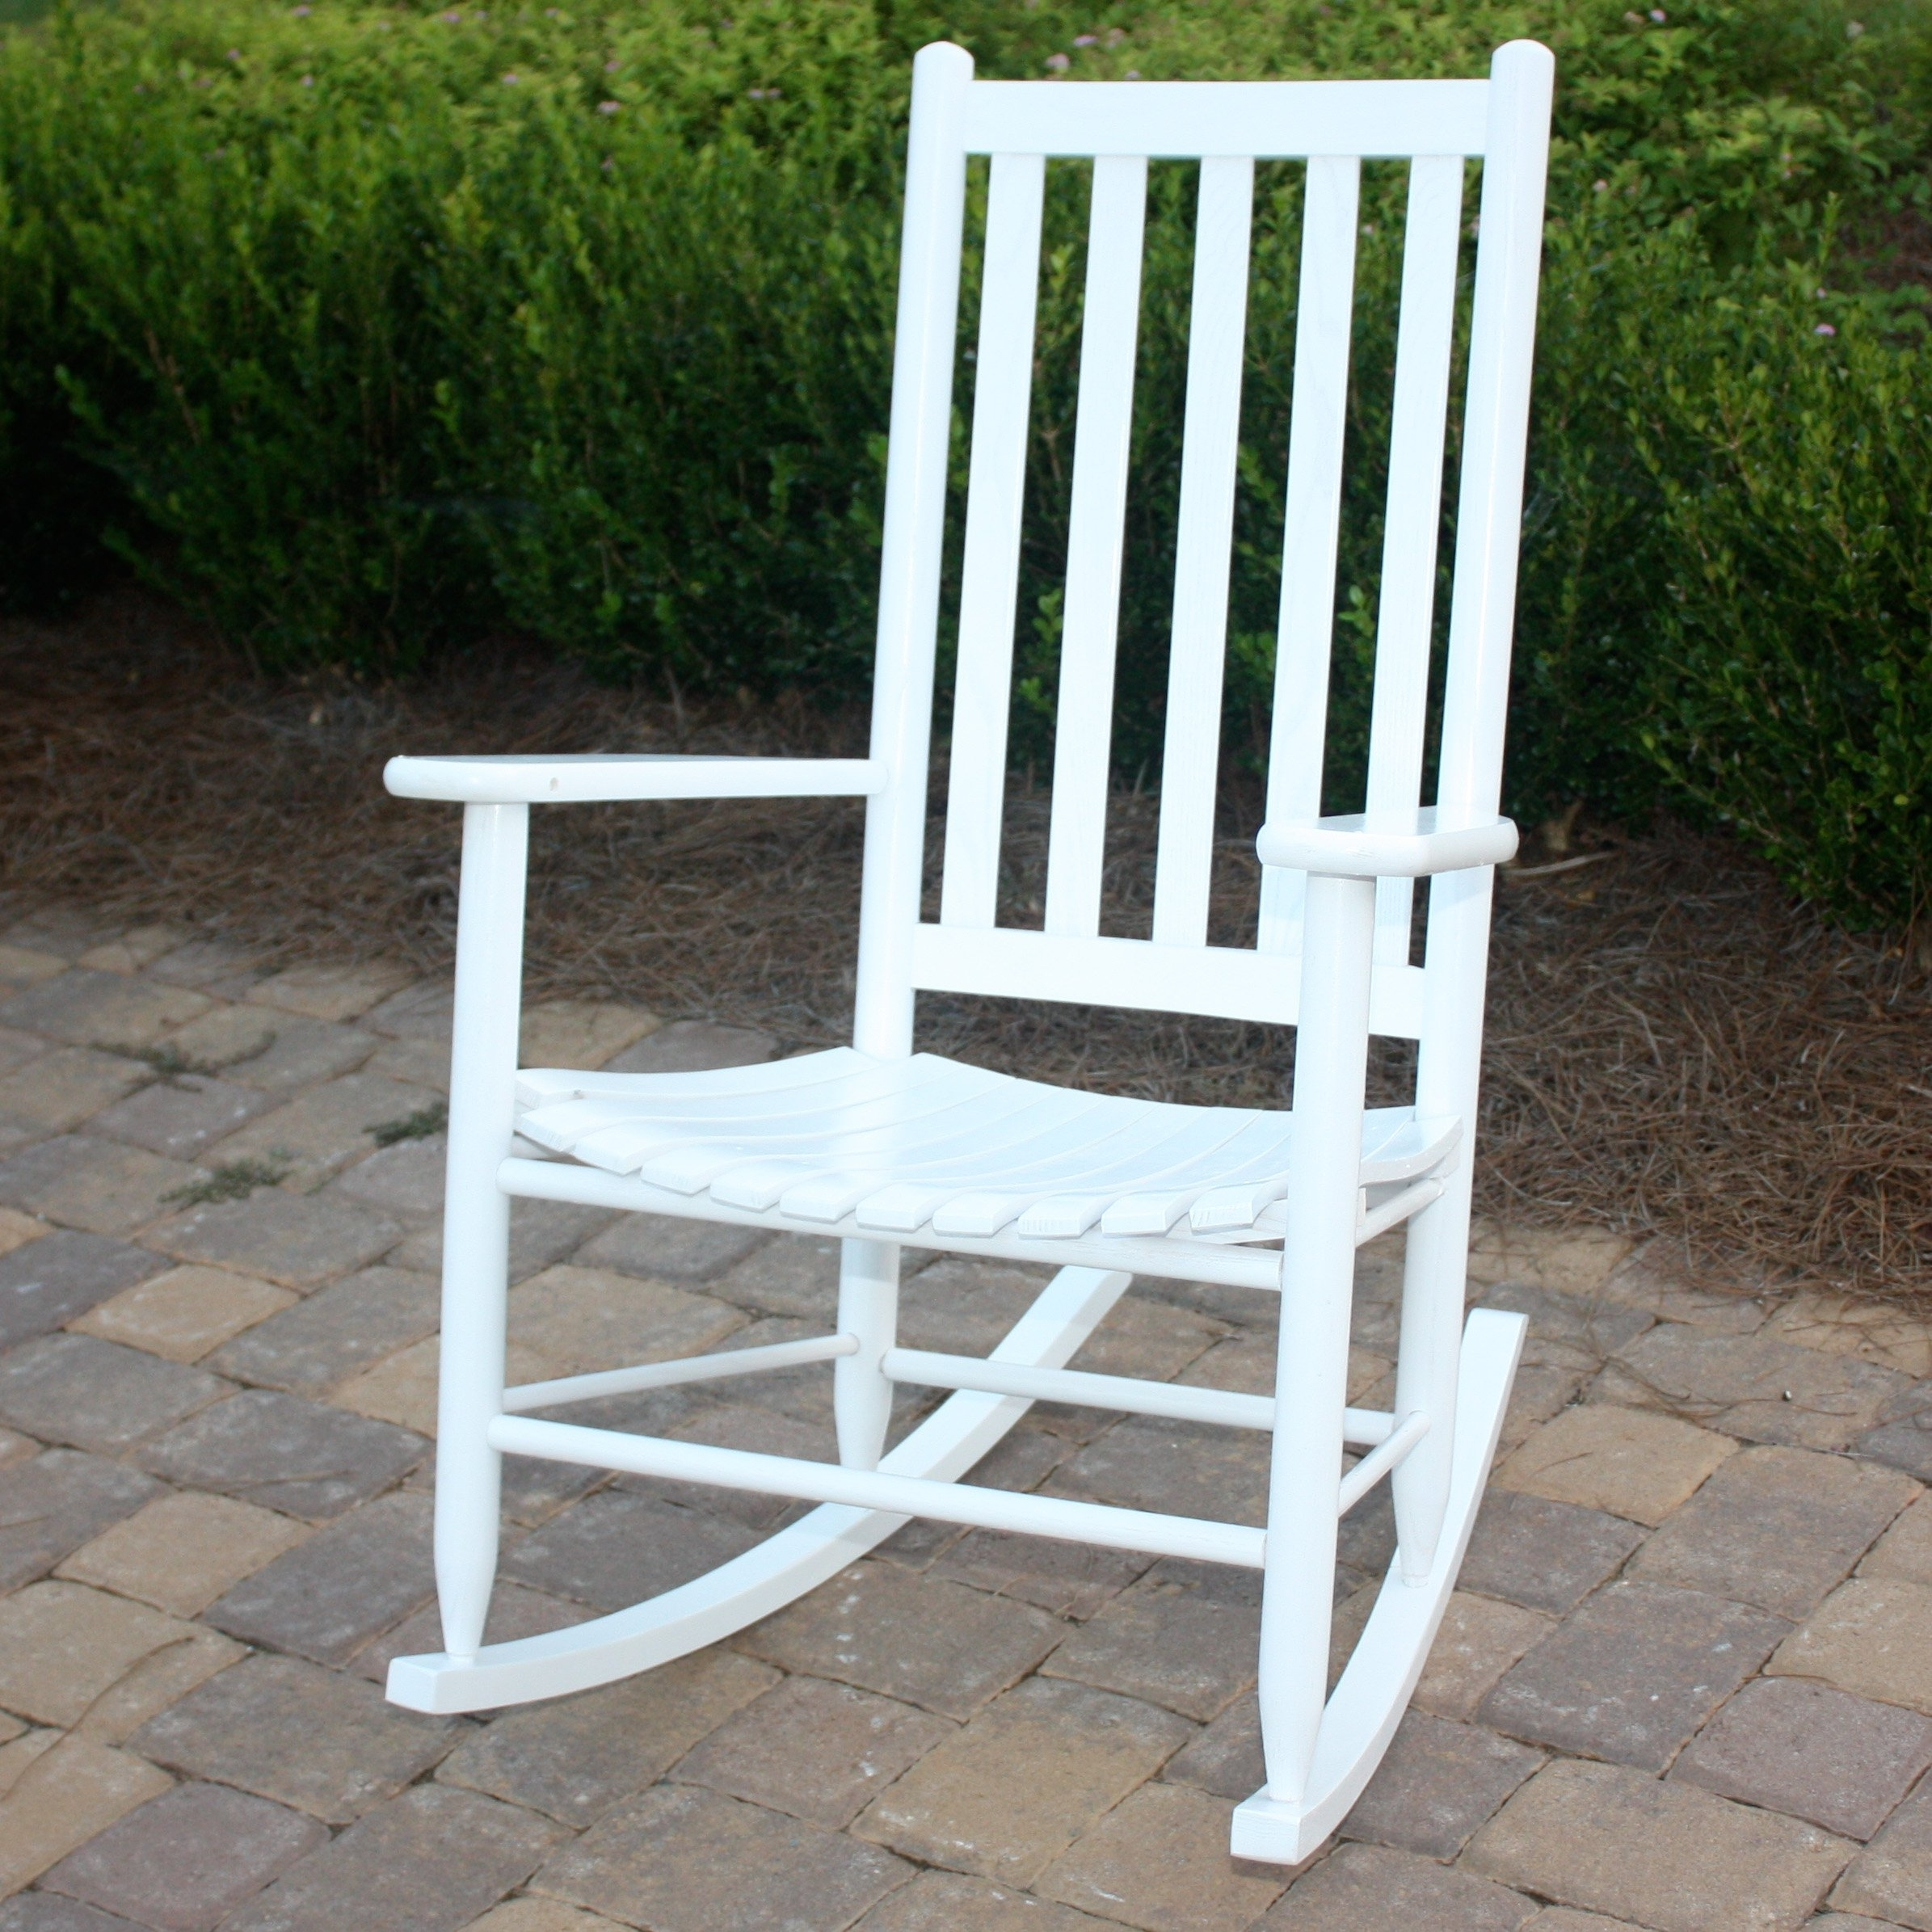 Furniture: Inspiring Outdoor Rocking Chair For Your Porch Or Your Intended For Rocking Chairs For Porch (View 4 of 15)